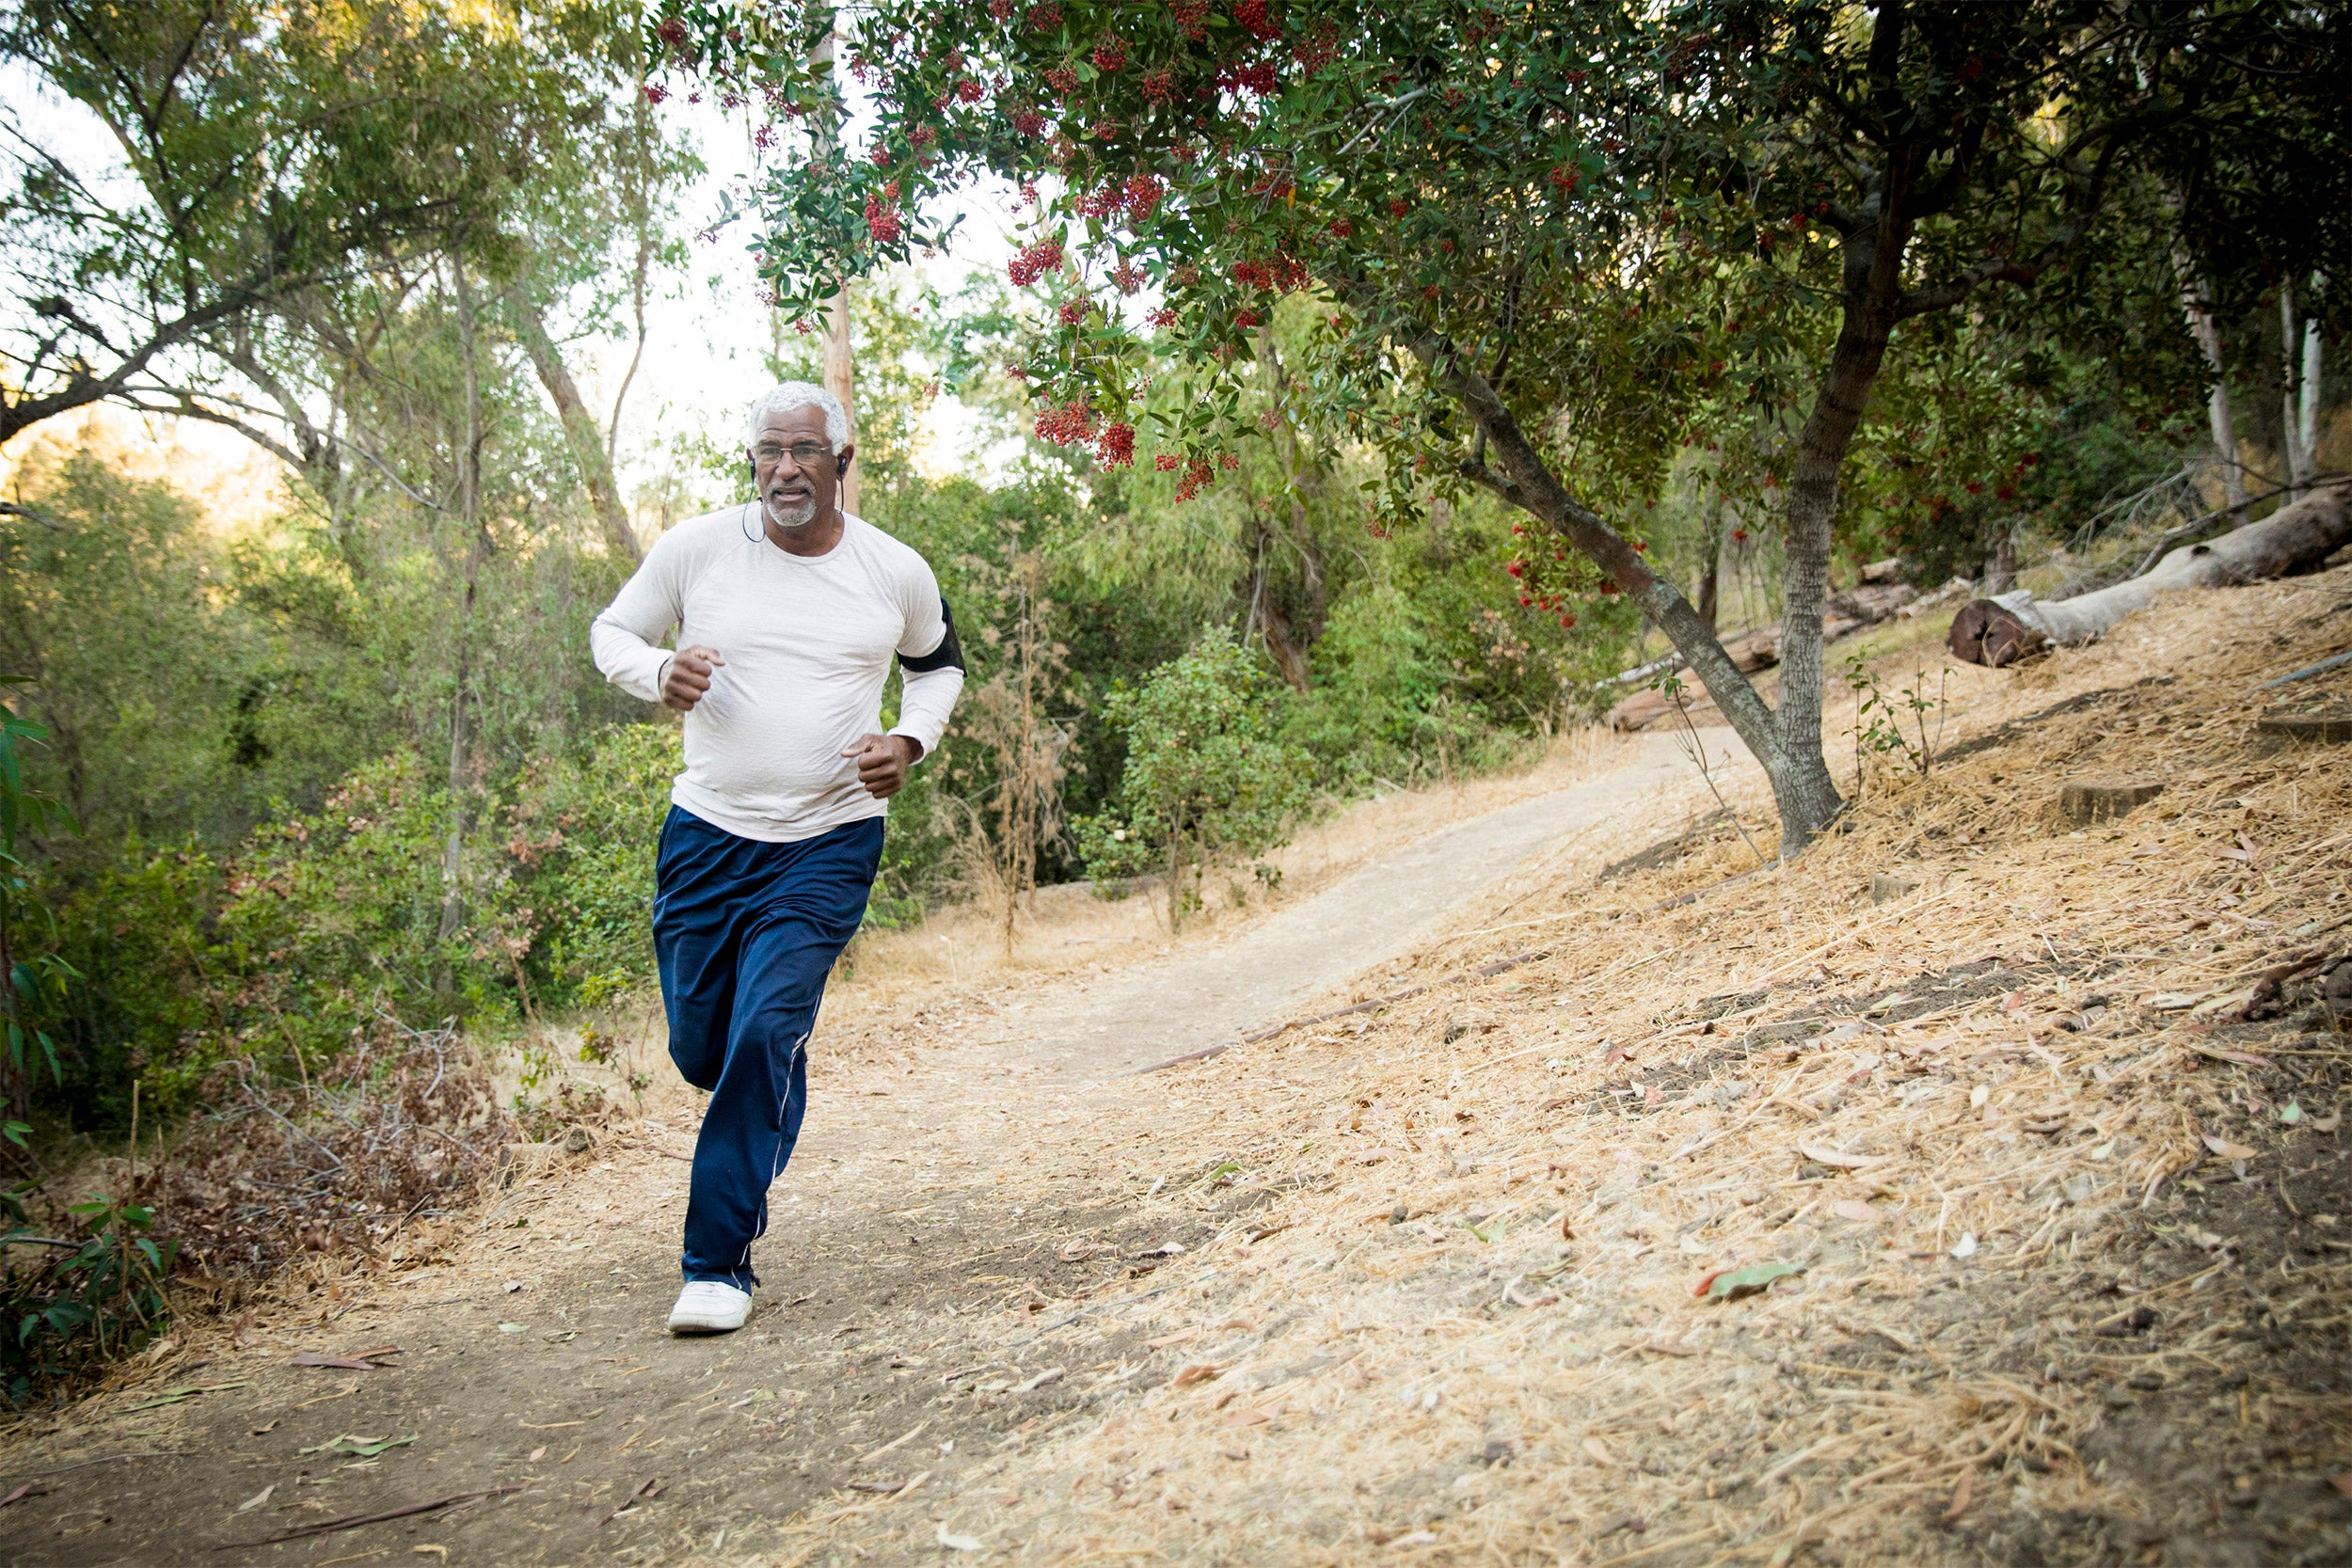 5 healthy habits may offer years free of chronic diseases